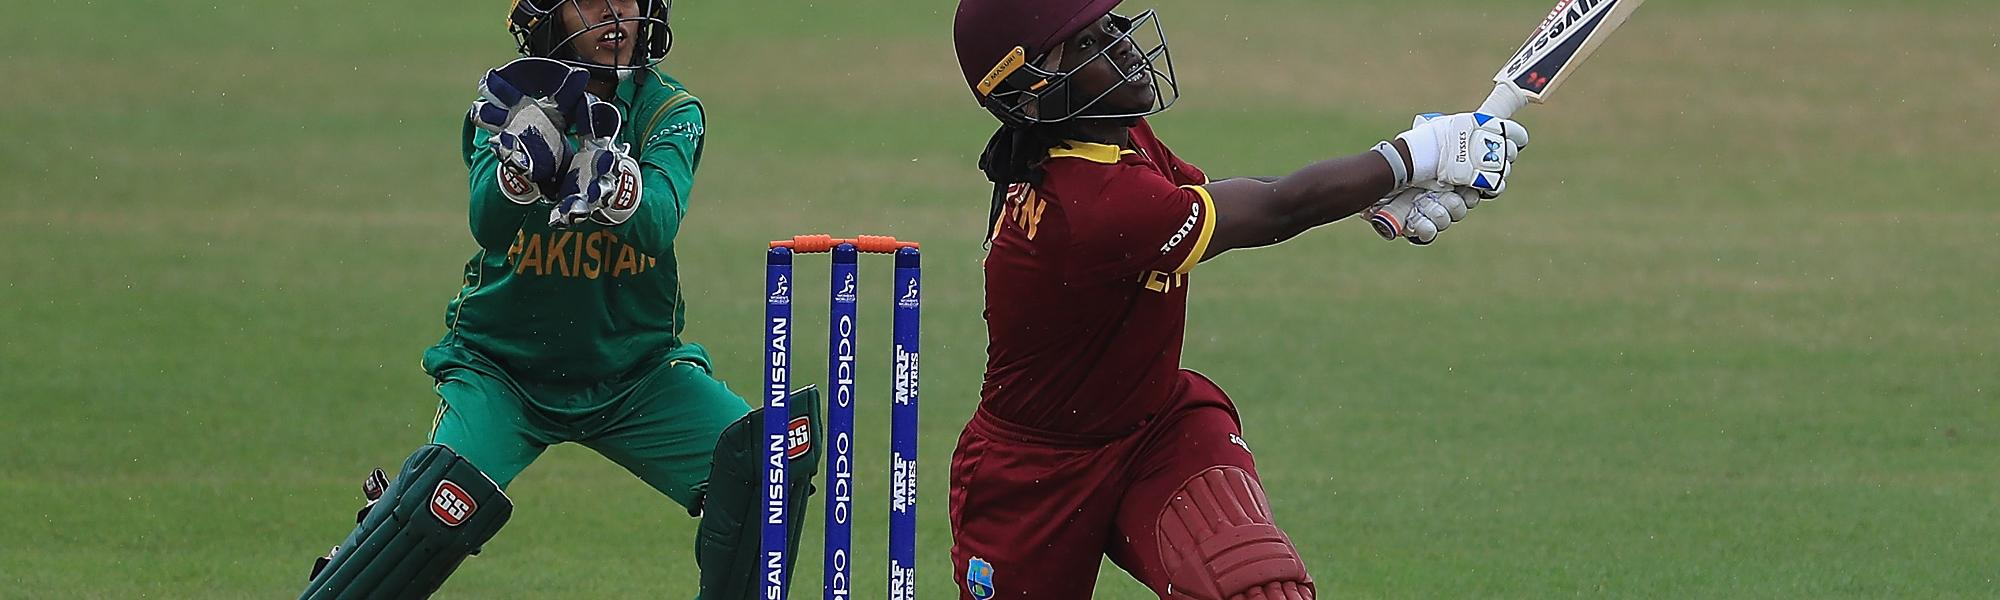 Deandra Dottin scored a 76-ball 104*, including 12 fours and three sixes, which powered West Indies to an imposing 285/4 in 50 overs.